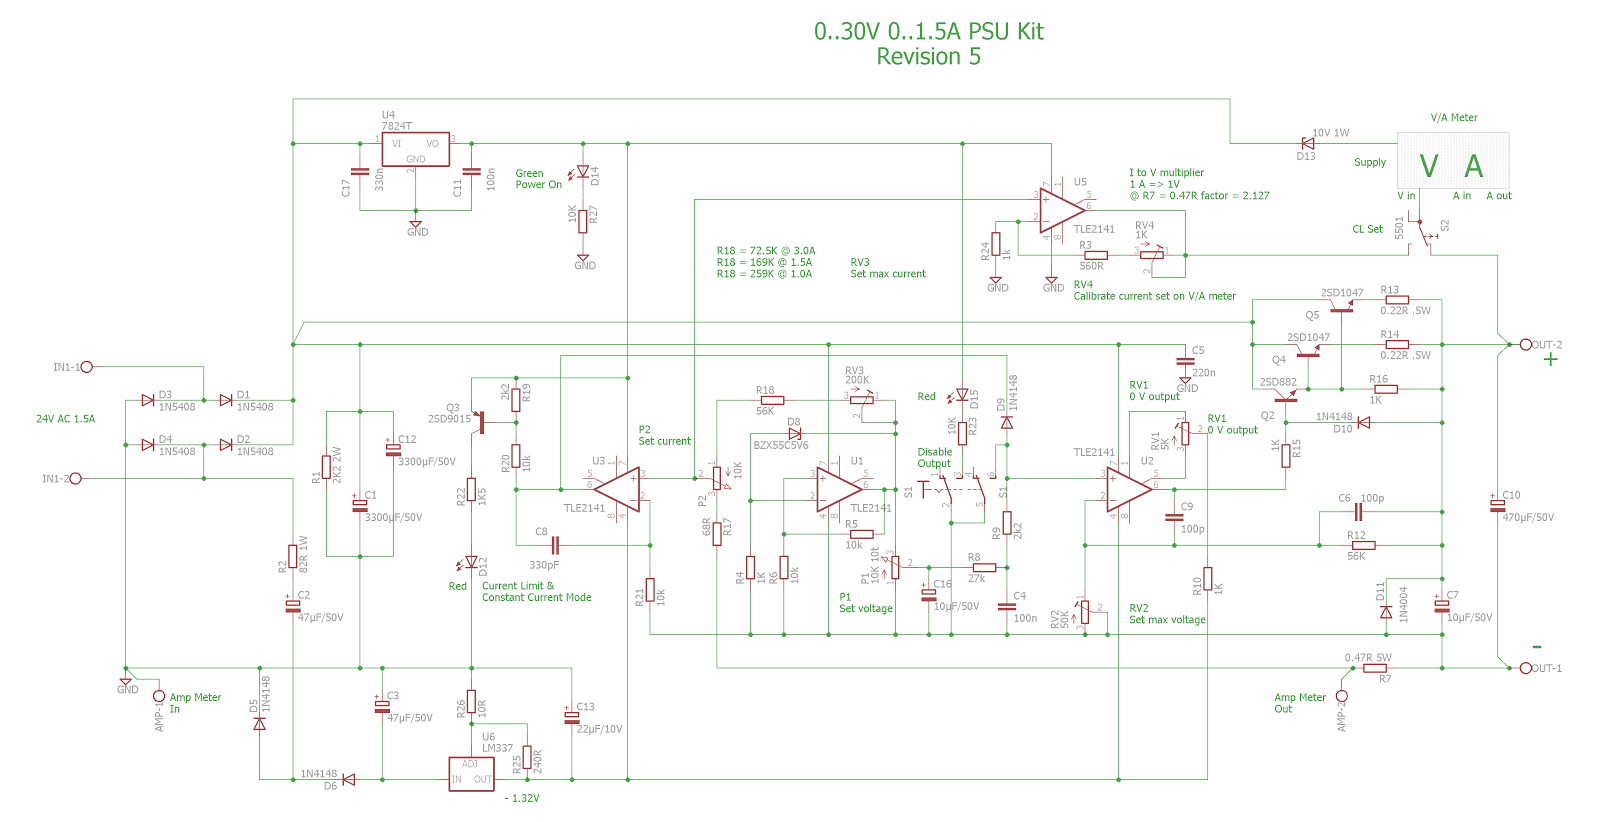 Pauls Diy Electronics Blog Tuning A 030v Dc 03a Psu Kit 24 Vdc Power Supply Schematic The Rise Time Of Is Now About 5msec And Fall Just Over 2 Msec At Maximum Voltage Current Measured With Dynamic Electronic Load